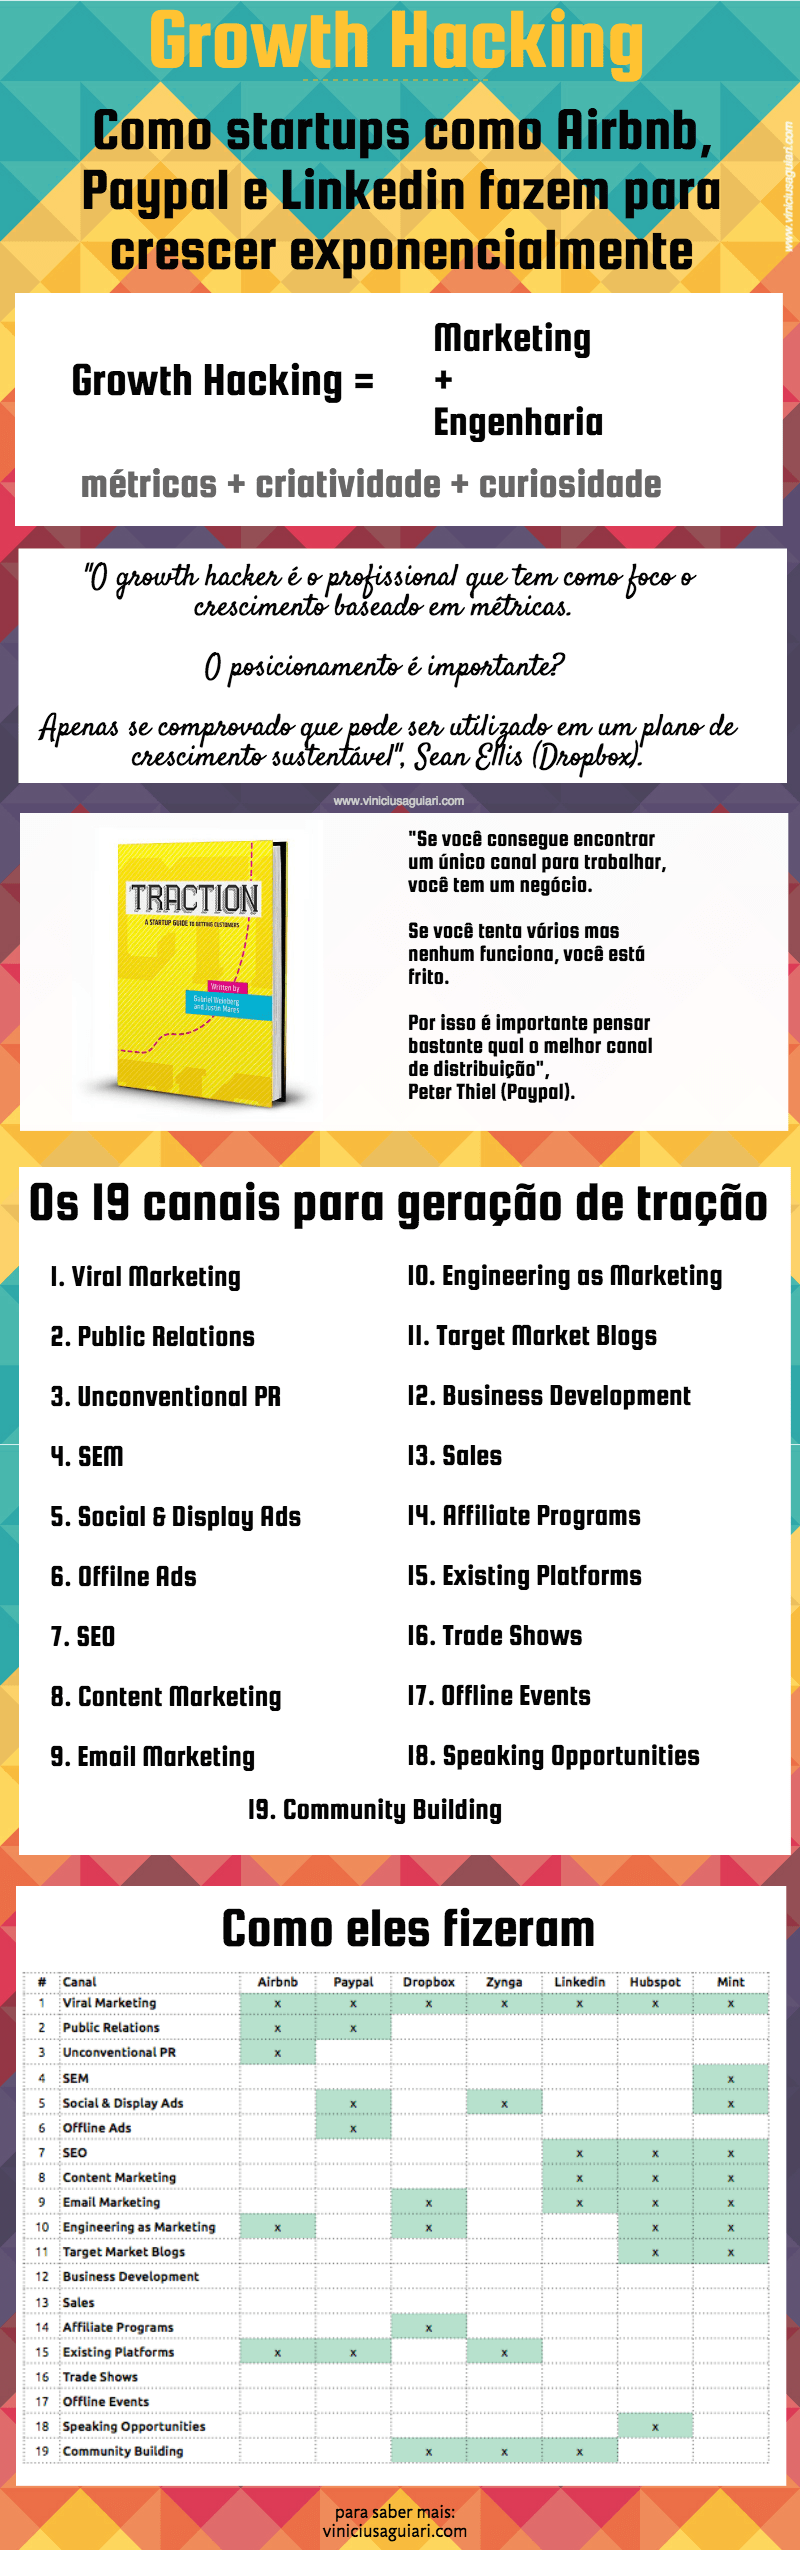 growth-hacking-infografico